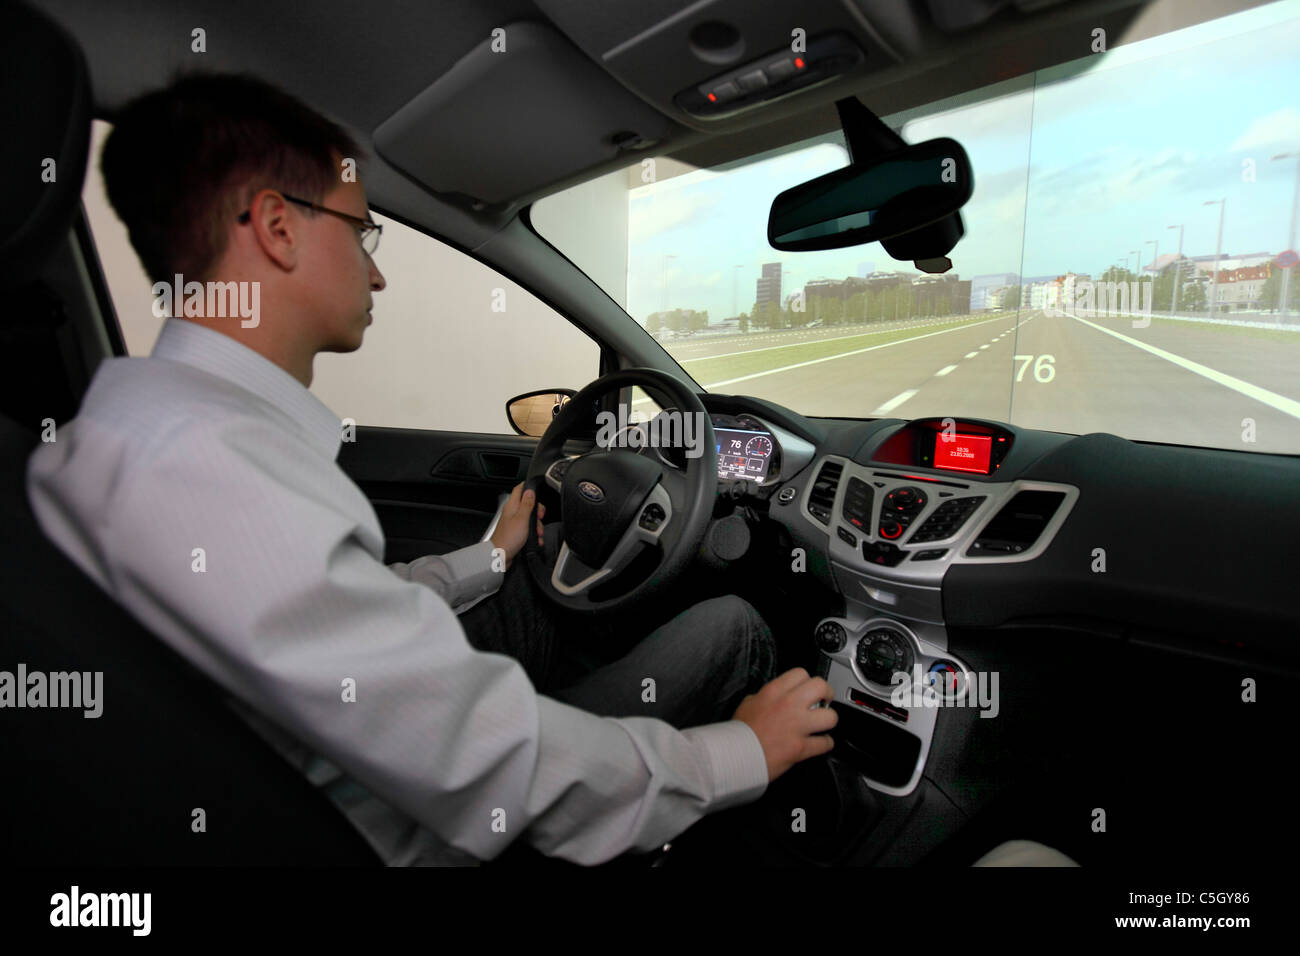 University Duisburg-Essen, simulator for electric mobility. Simulation of performance capability of electric vehicles. - Stock Image